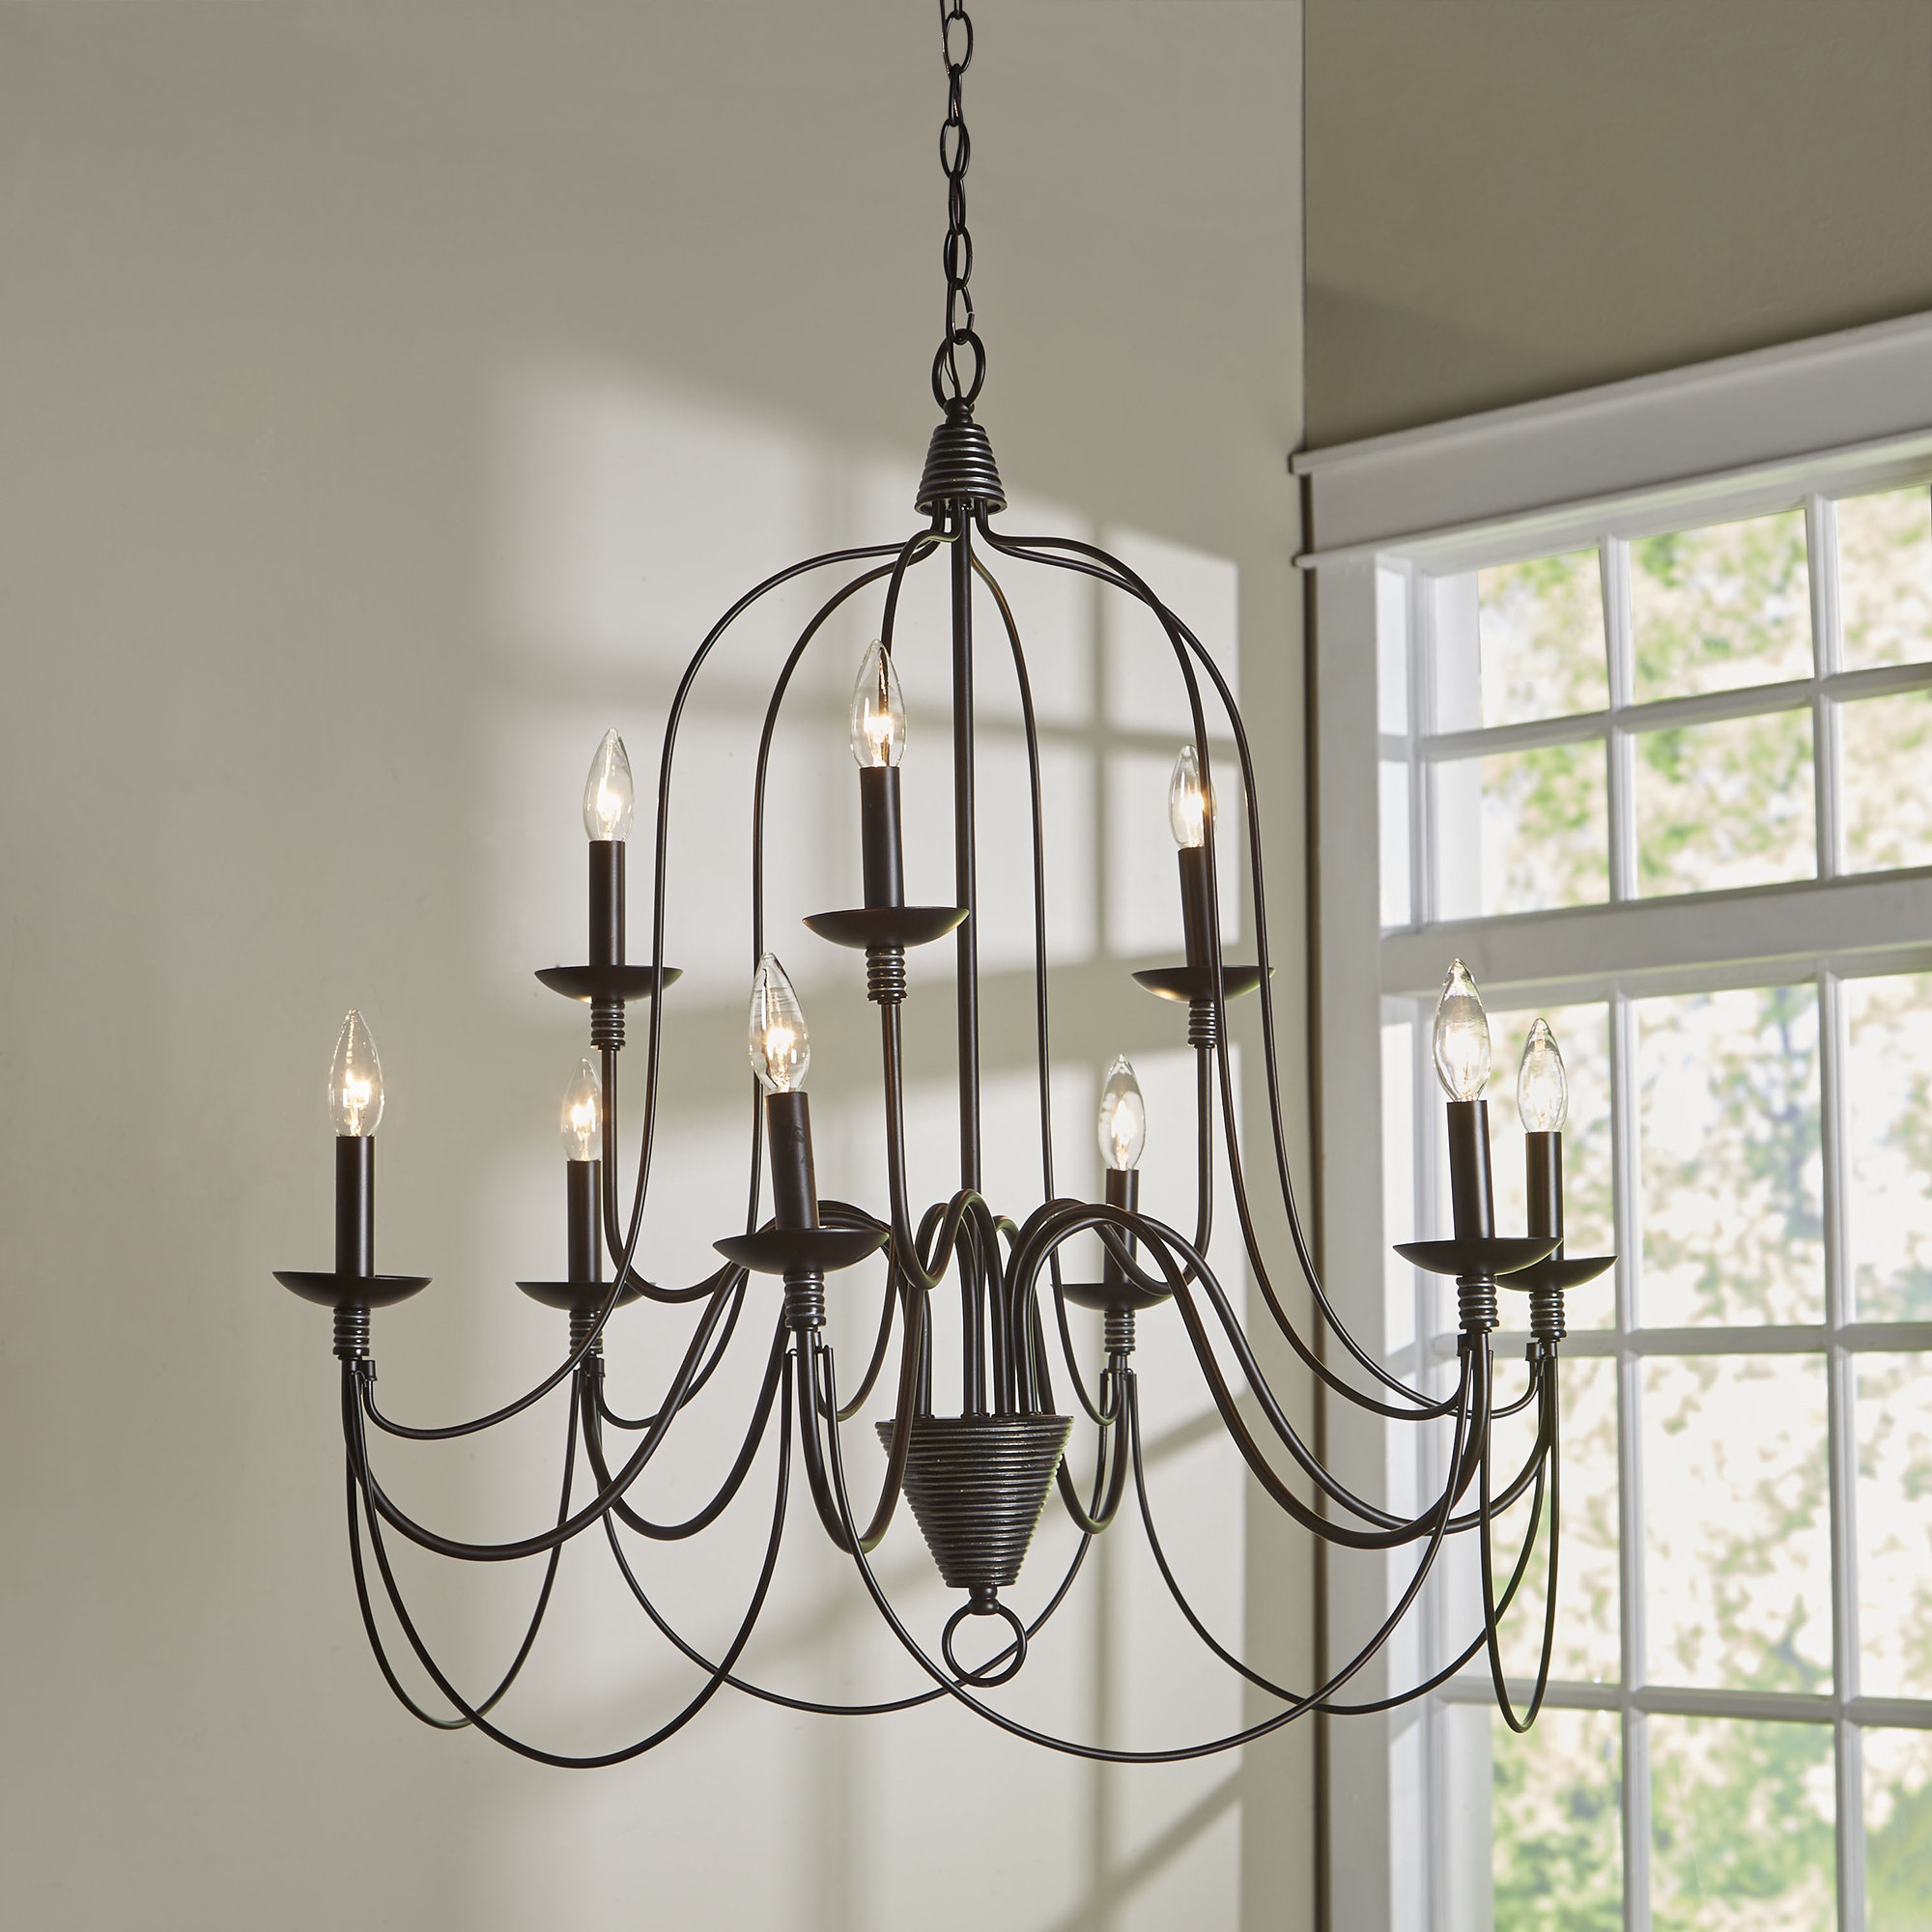 Diaz 6 Light Candle Style Chandeliers With Newest Watford 9 Light Candle Style Chandelier (View 11 of 25)